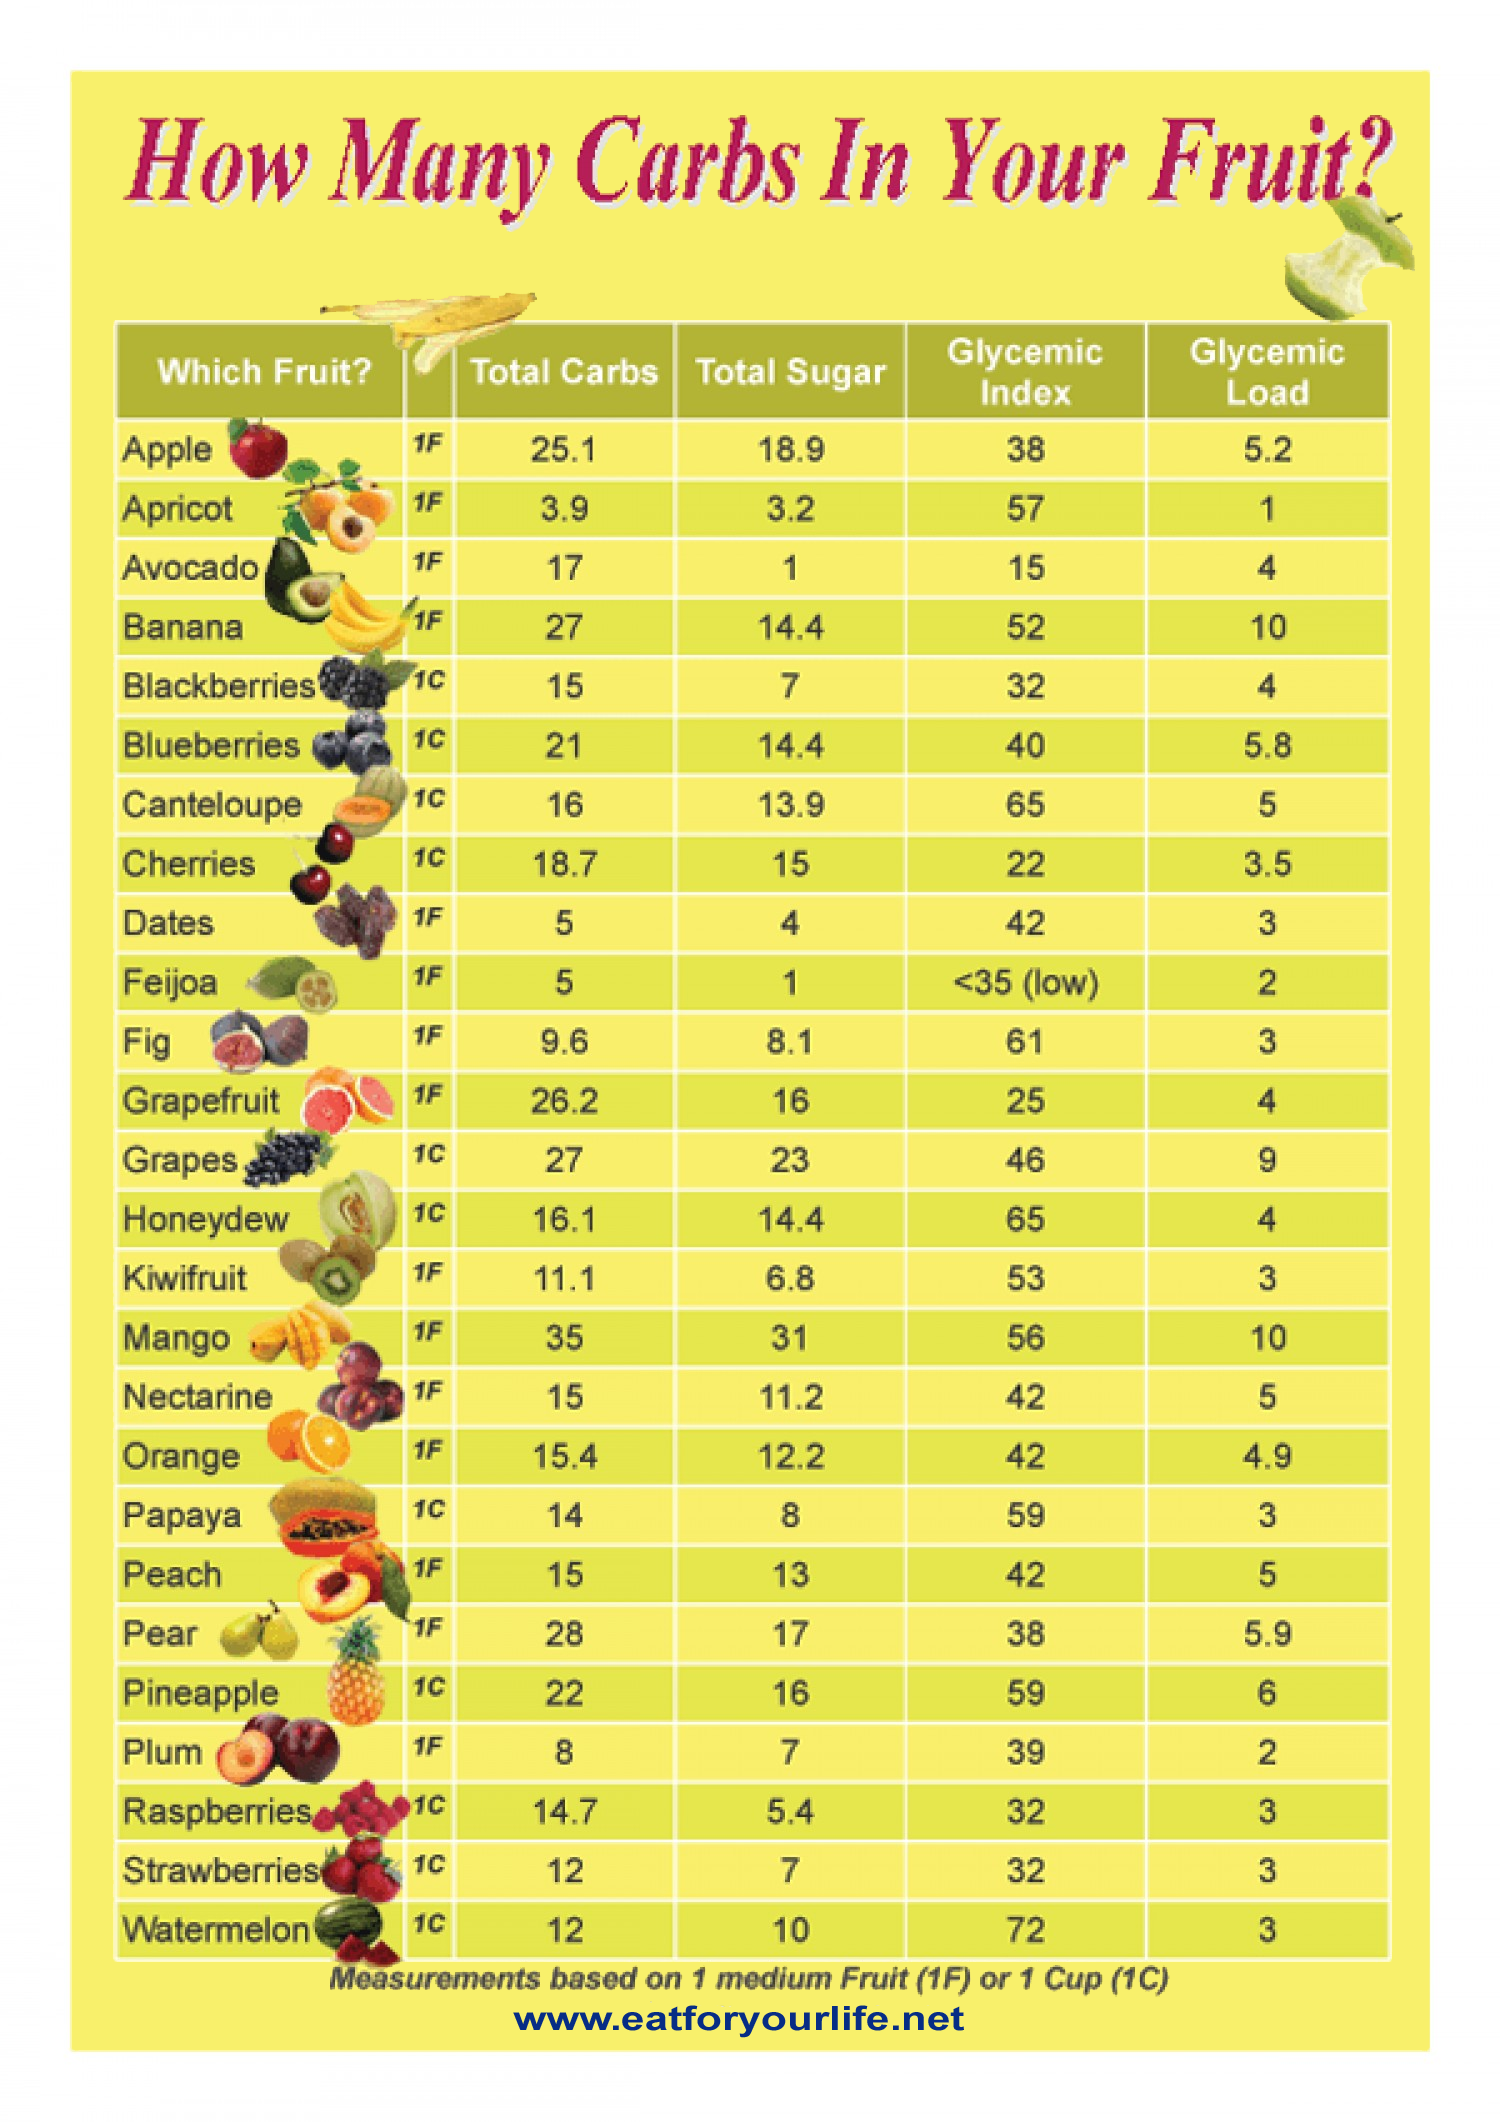 How Many Carbs In Your Fruit? Infographic